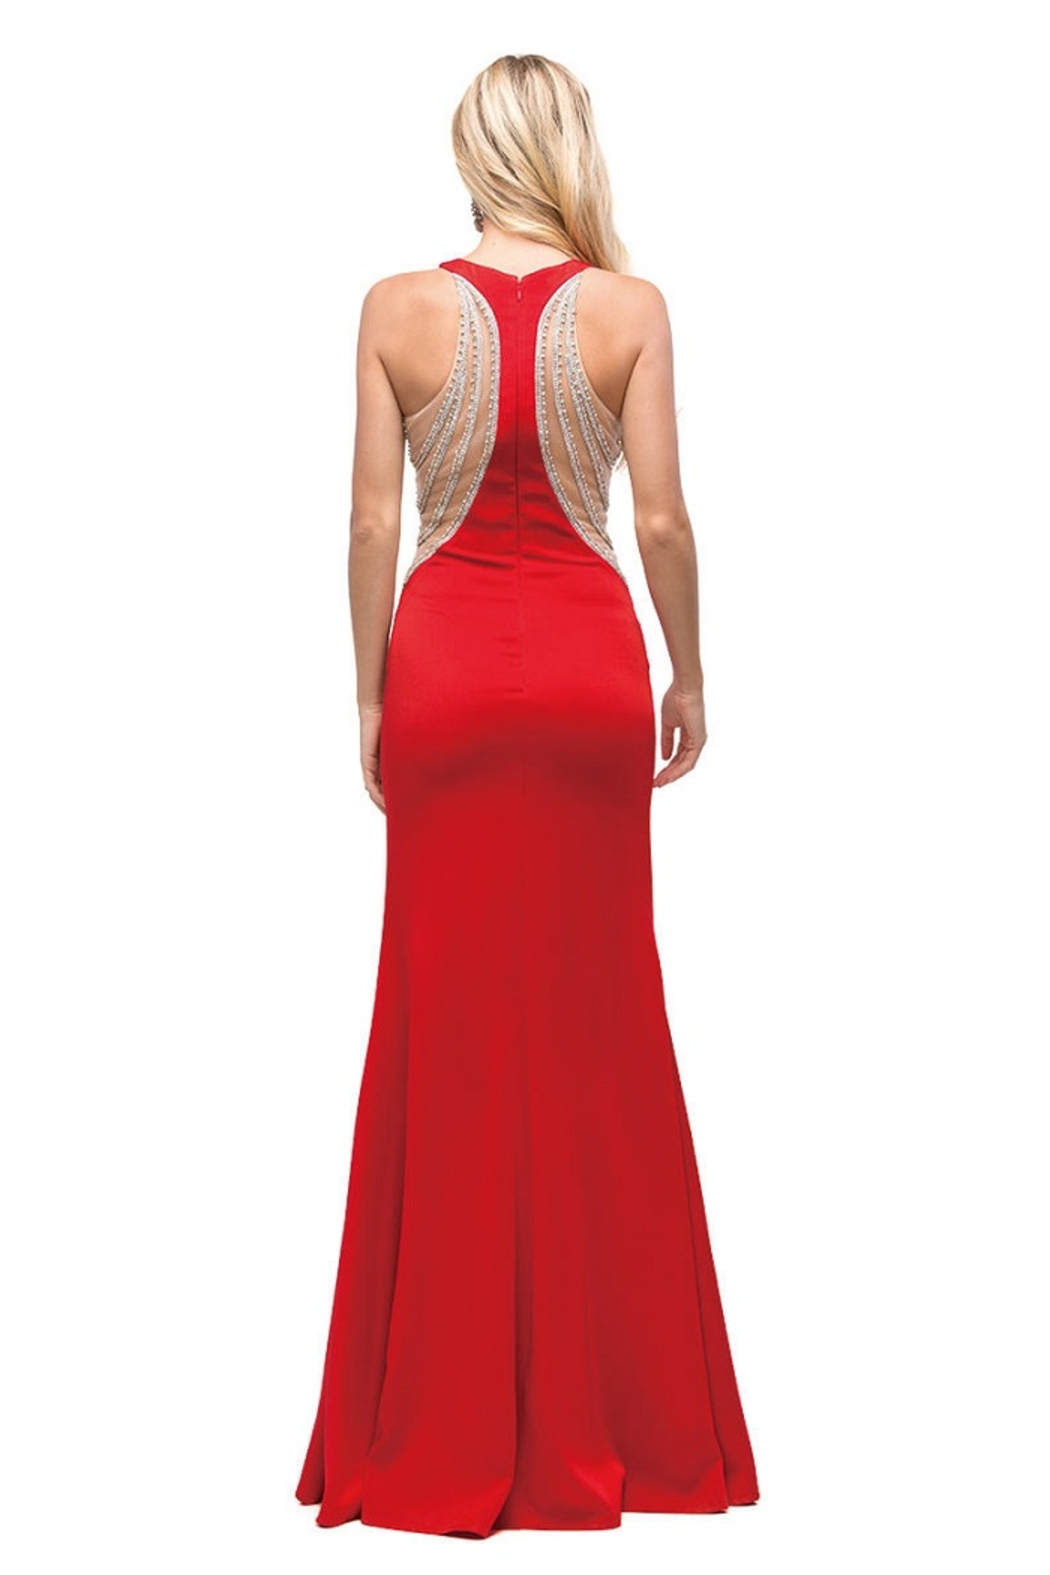 DANCING QUEEN Red Illusion Long Formal Dress - Front Full Image